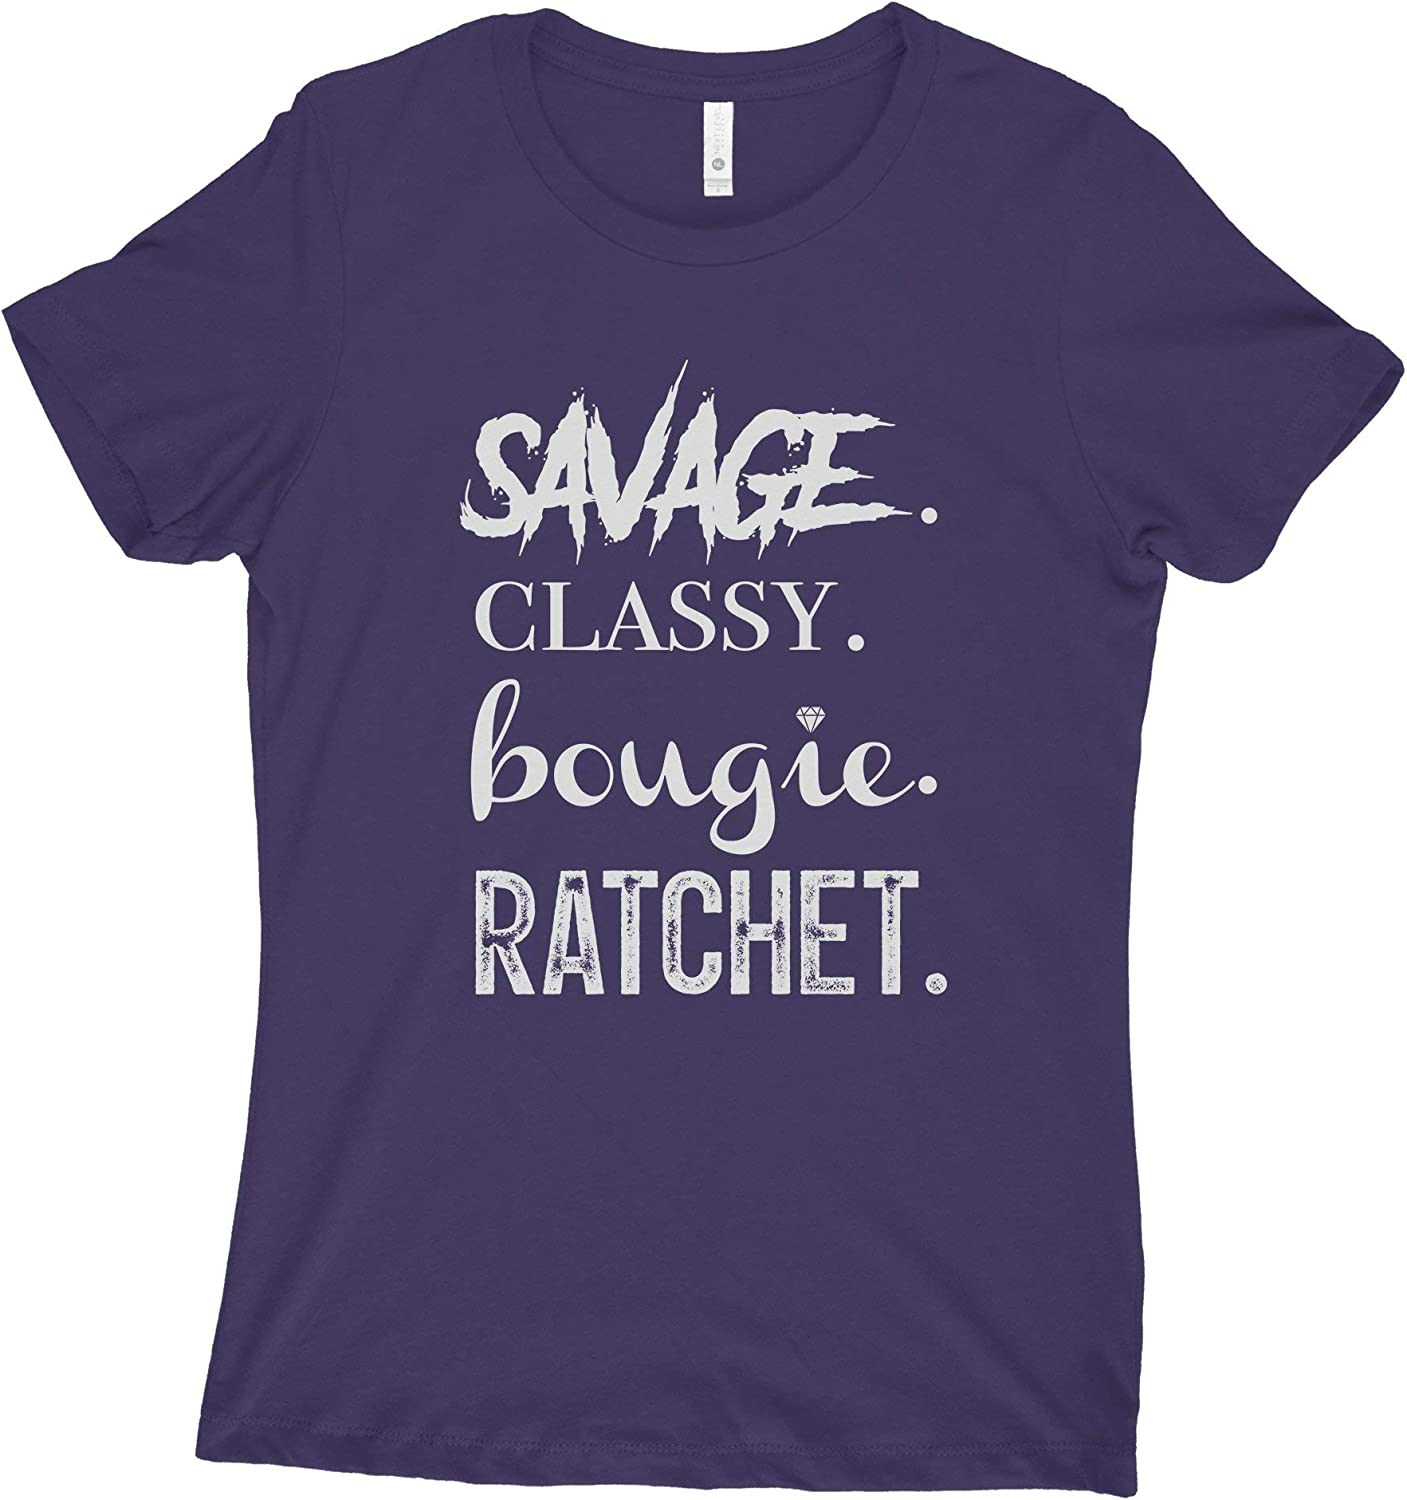 We Got Good Imma Max online shopping 69% OFF Savage Bougie Ratche Women Classy Tshirt